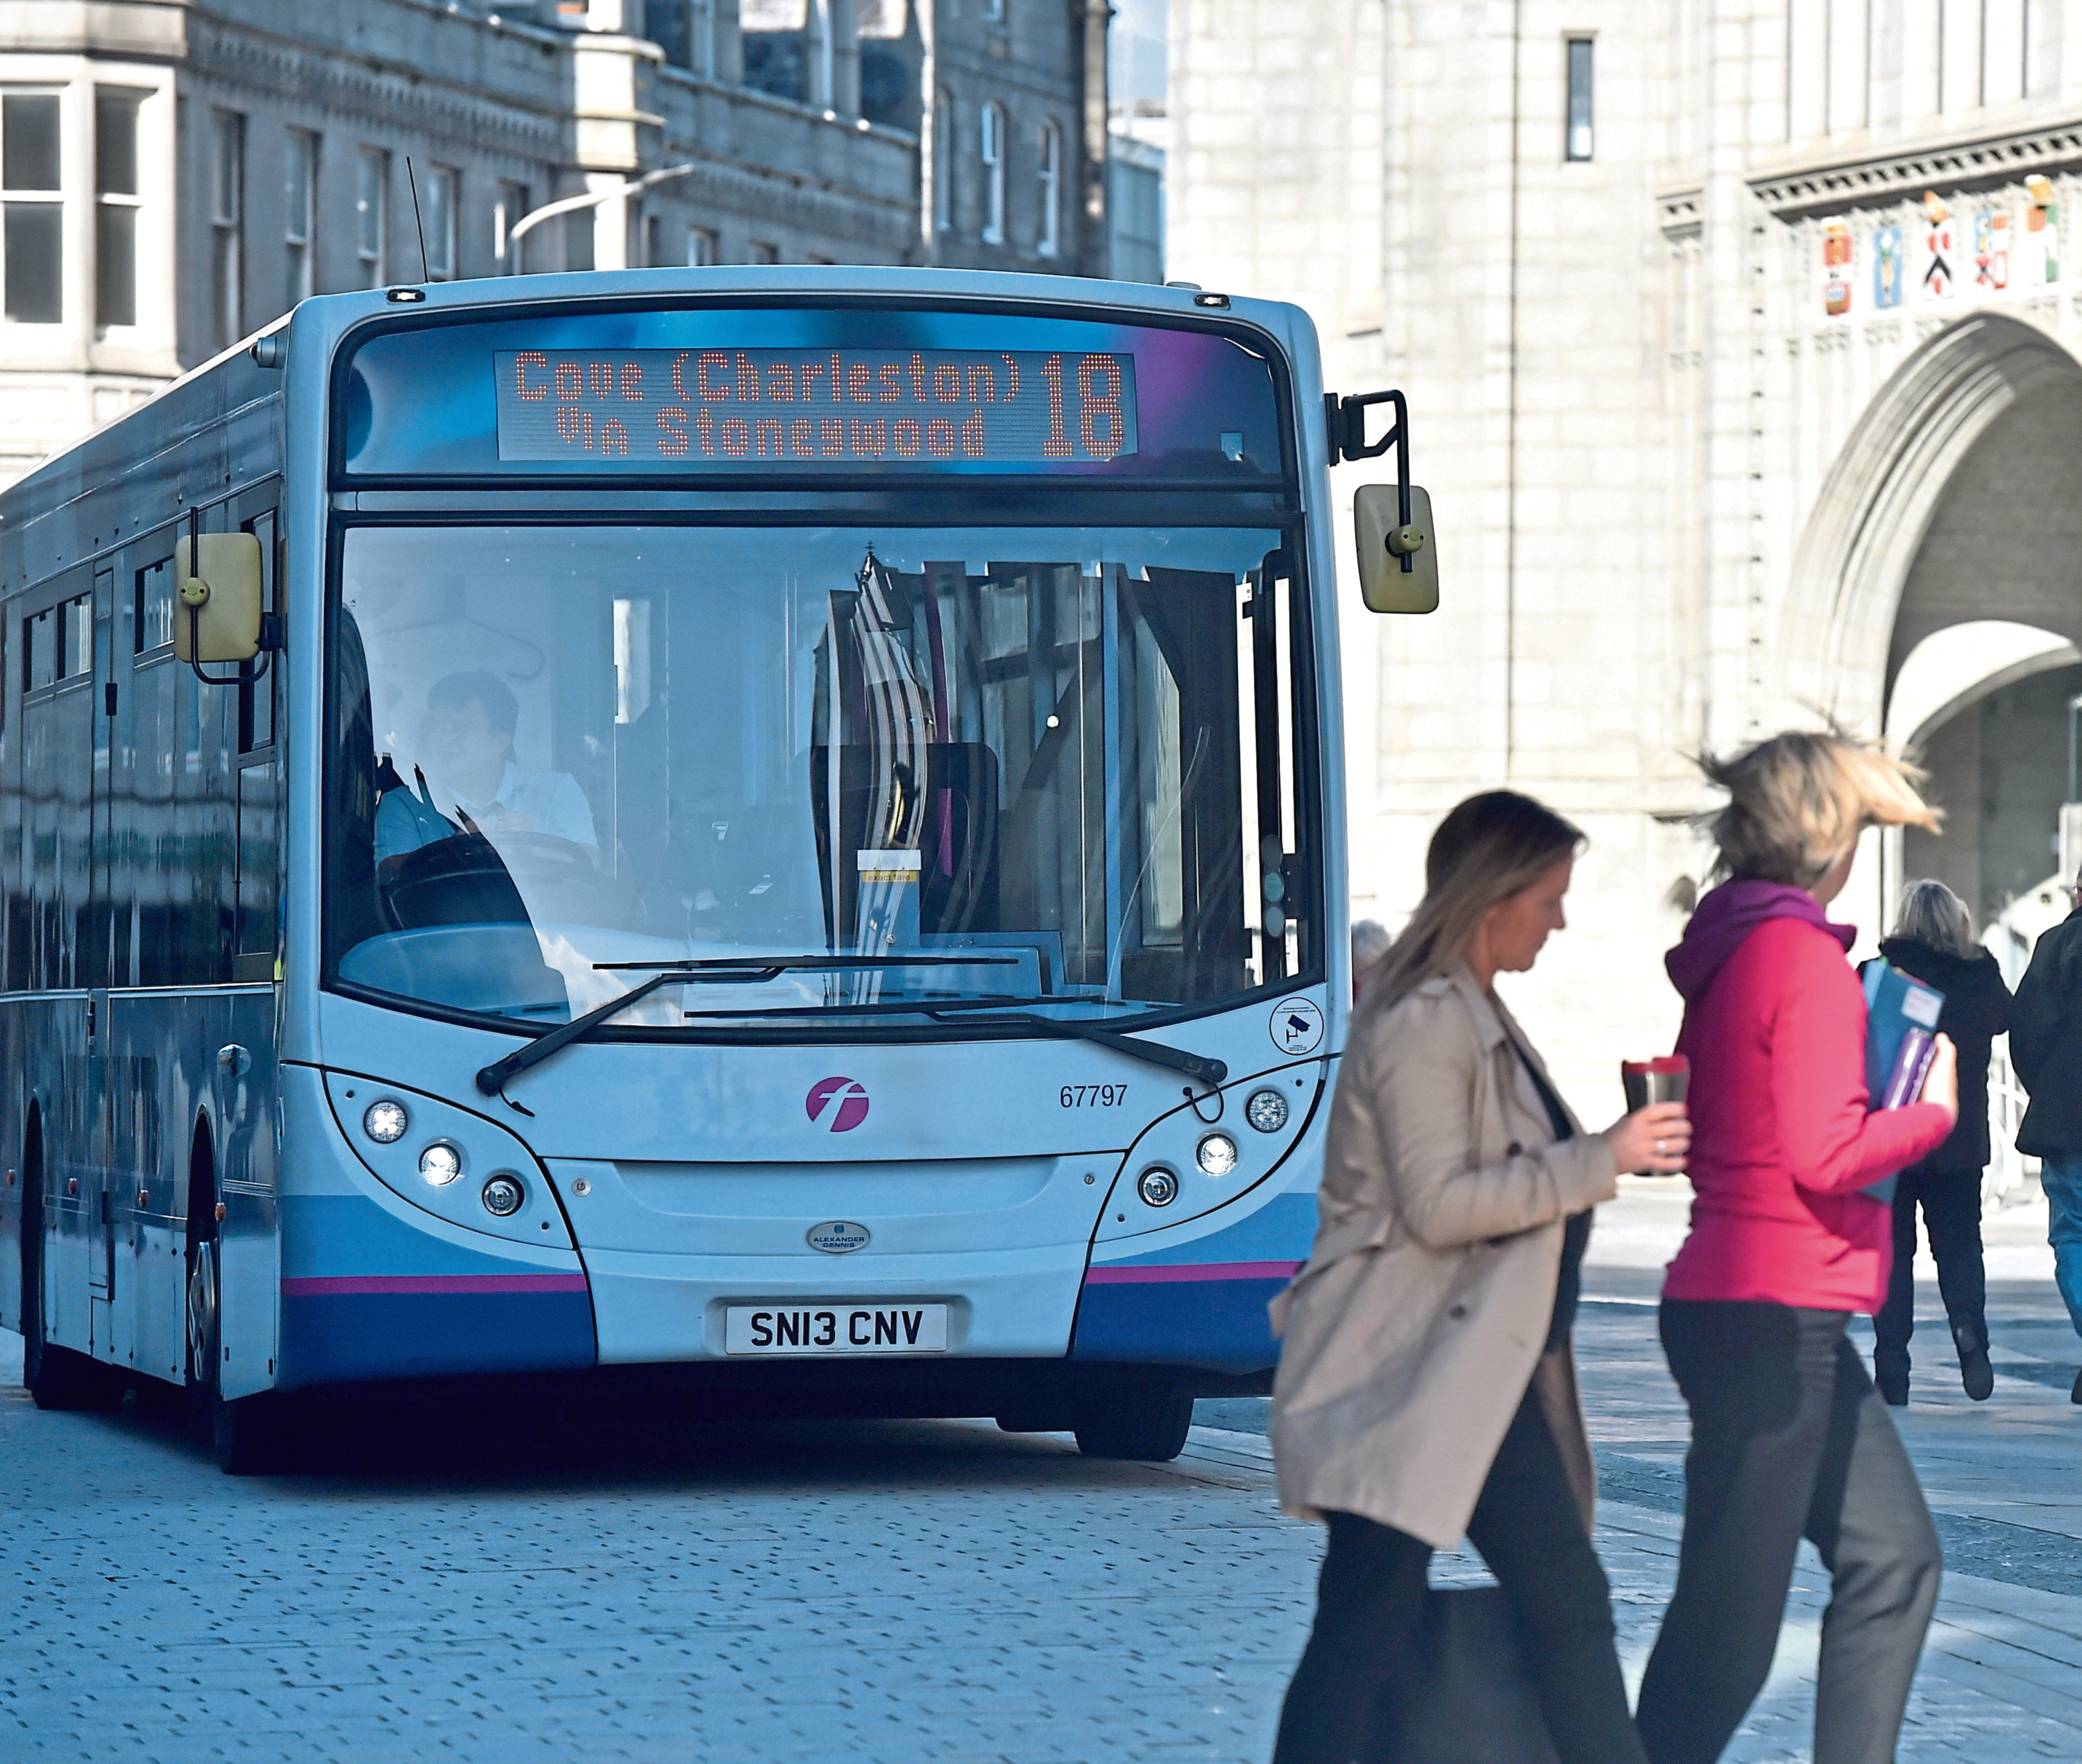 The pedestrianised area of Broad Street has raised safety concerns